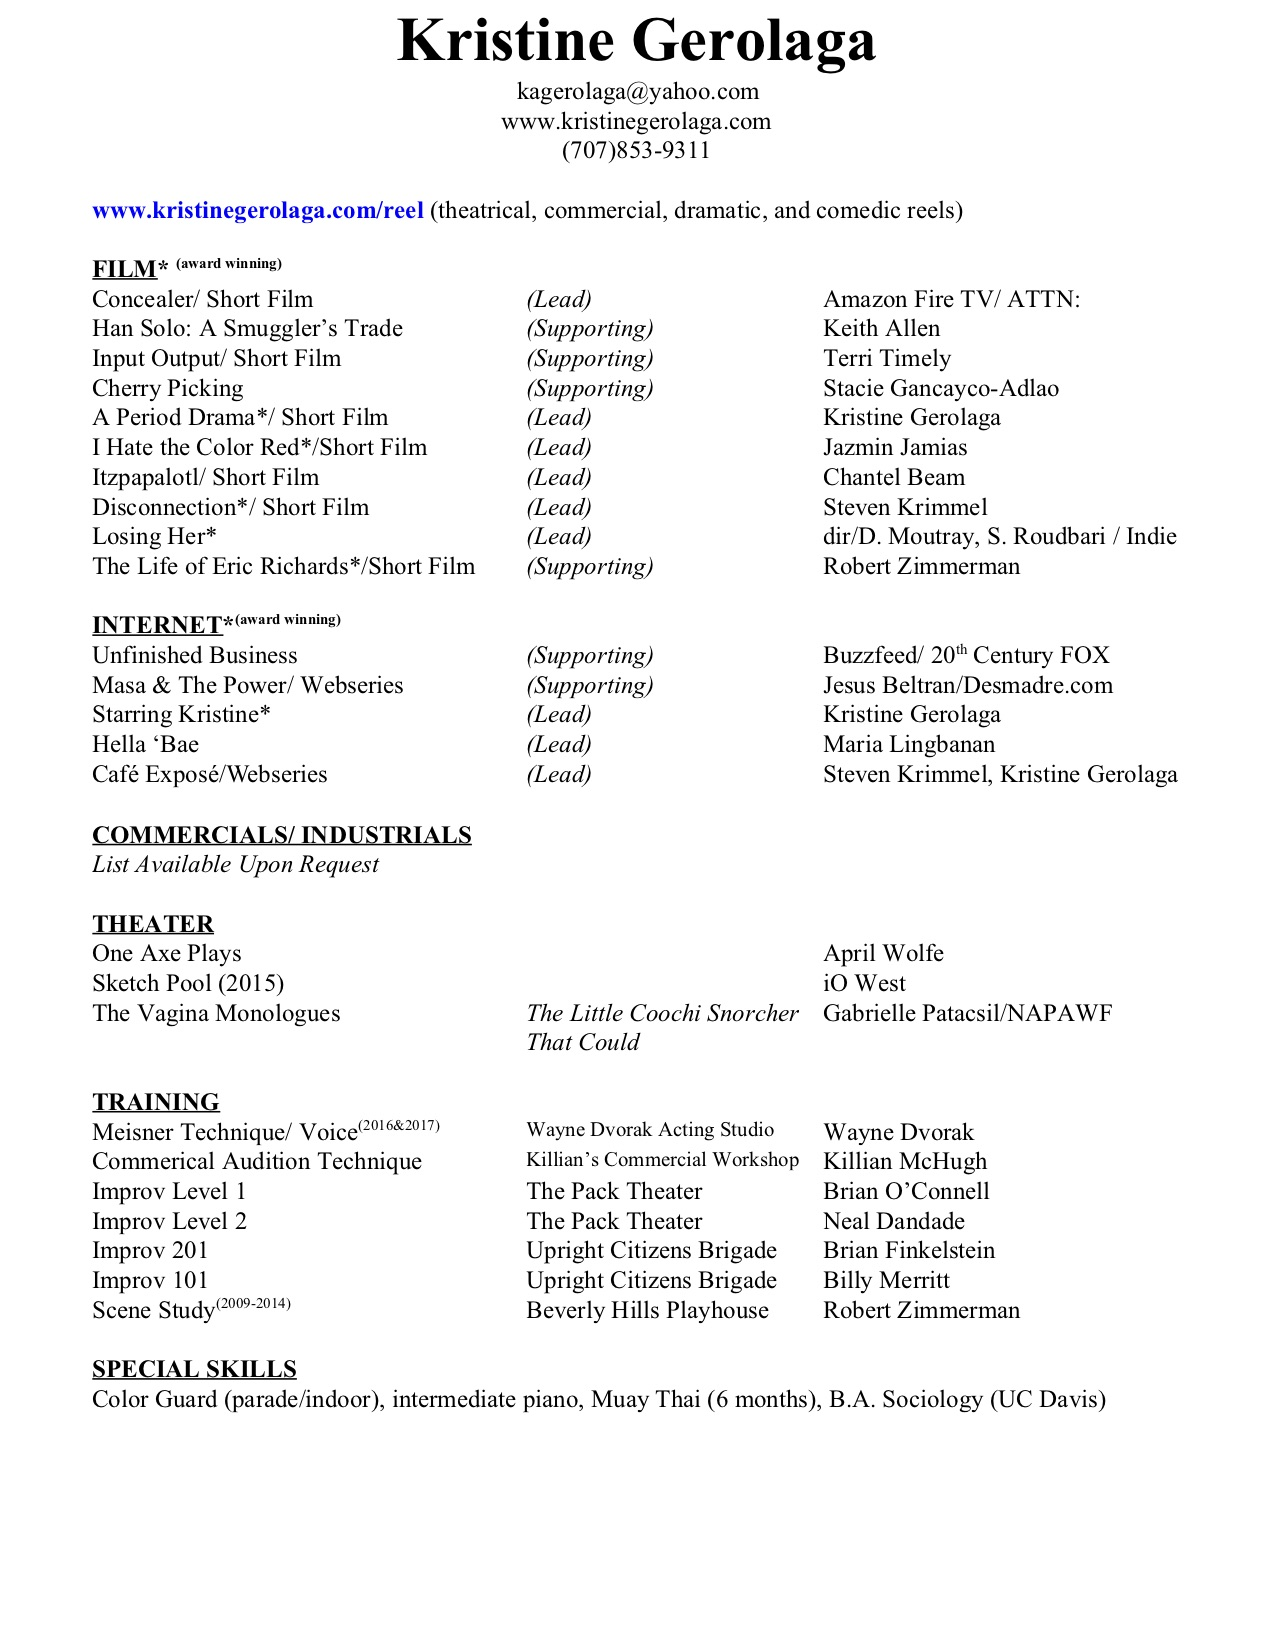 Kristine Gerolaga-Web Resume May 2019.jpg